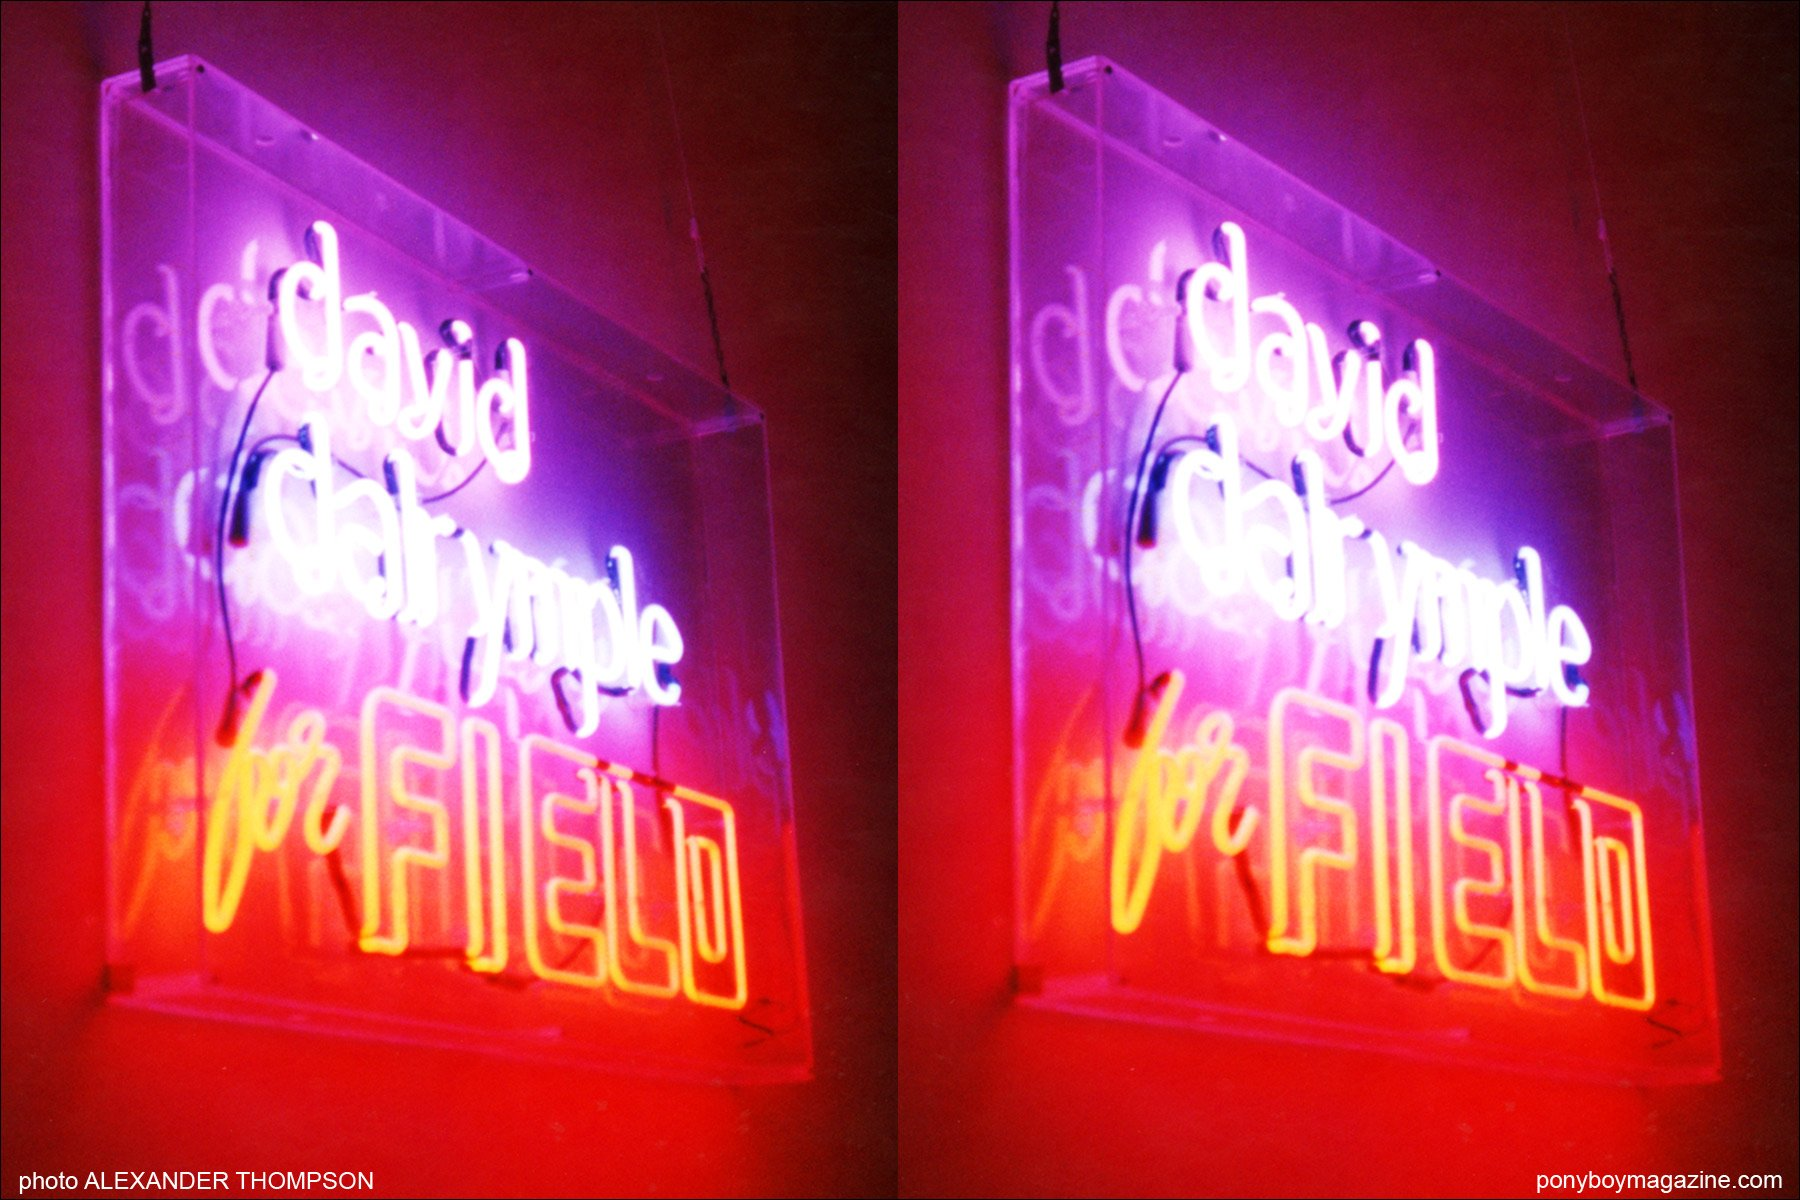 Neon sign for David Dalrymple collection for Patricia Field. Photograph by Alexander Thompson for Ponyboy Magazine.